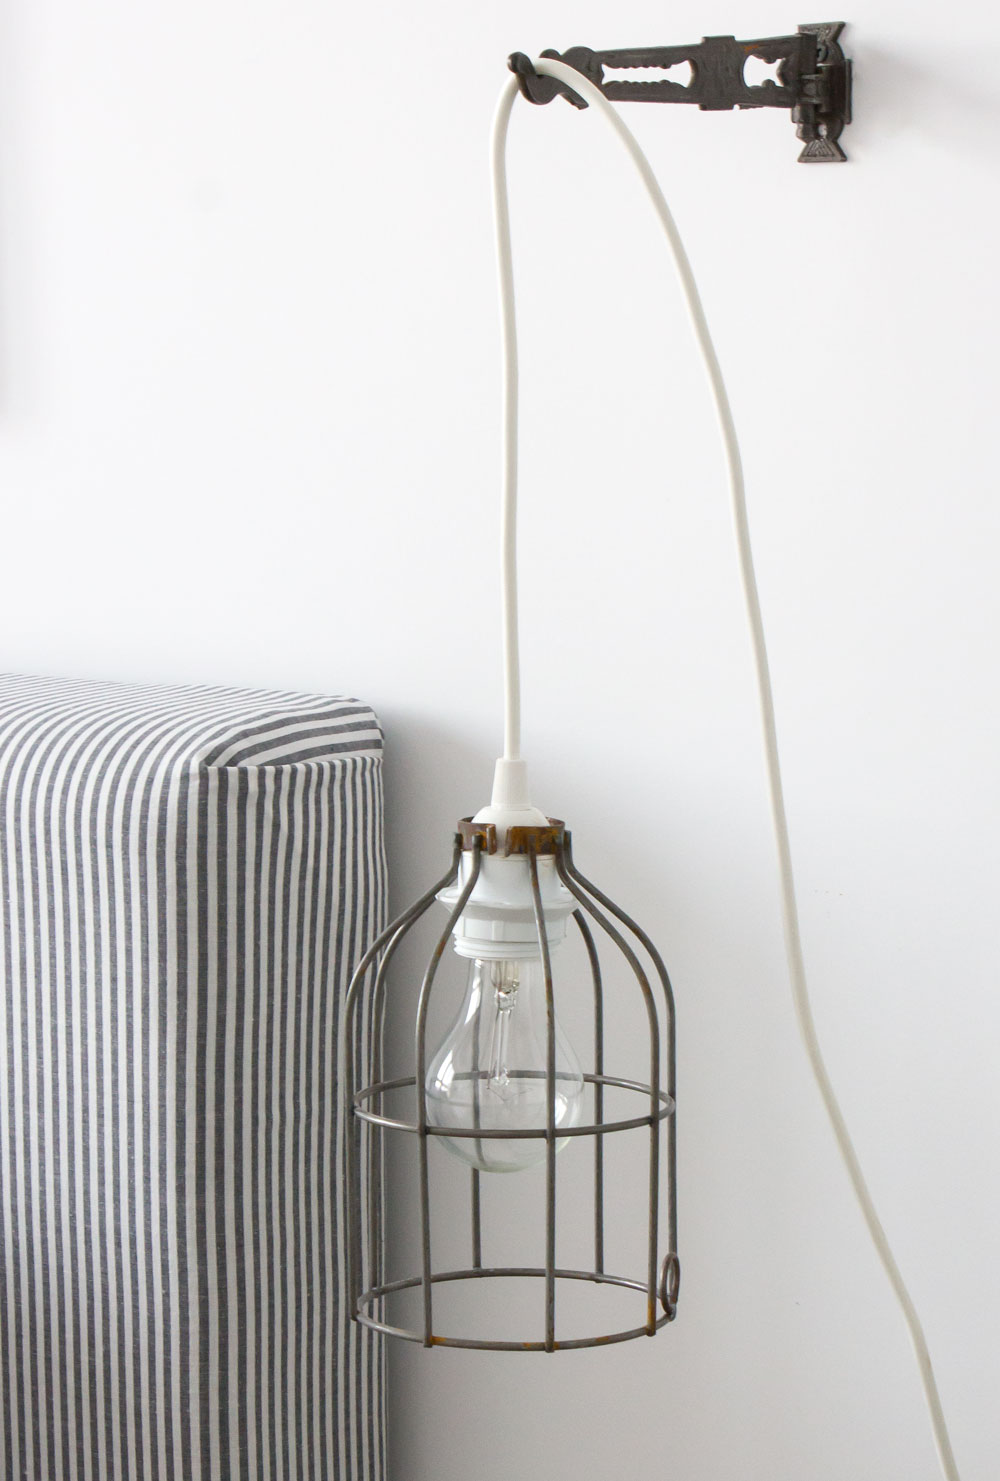 hanging-cage-light-and-reupolstered-headboard.jpg